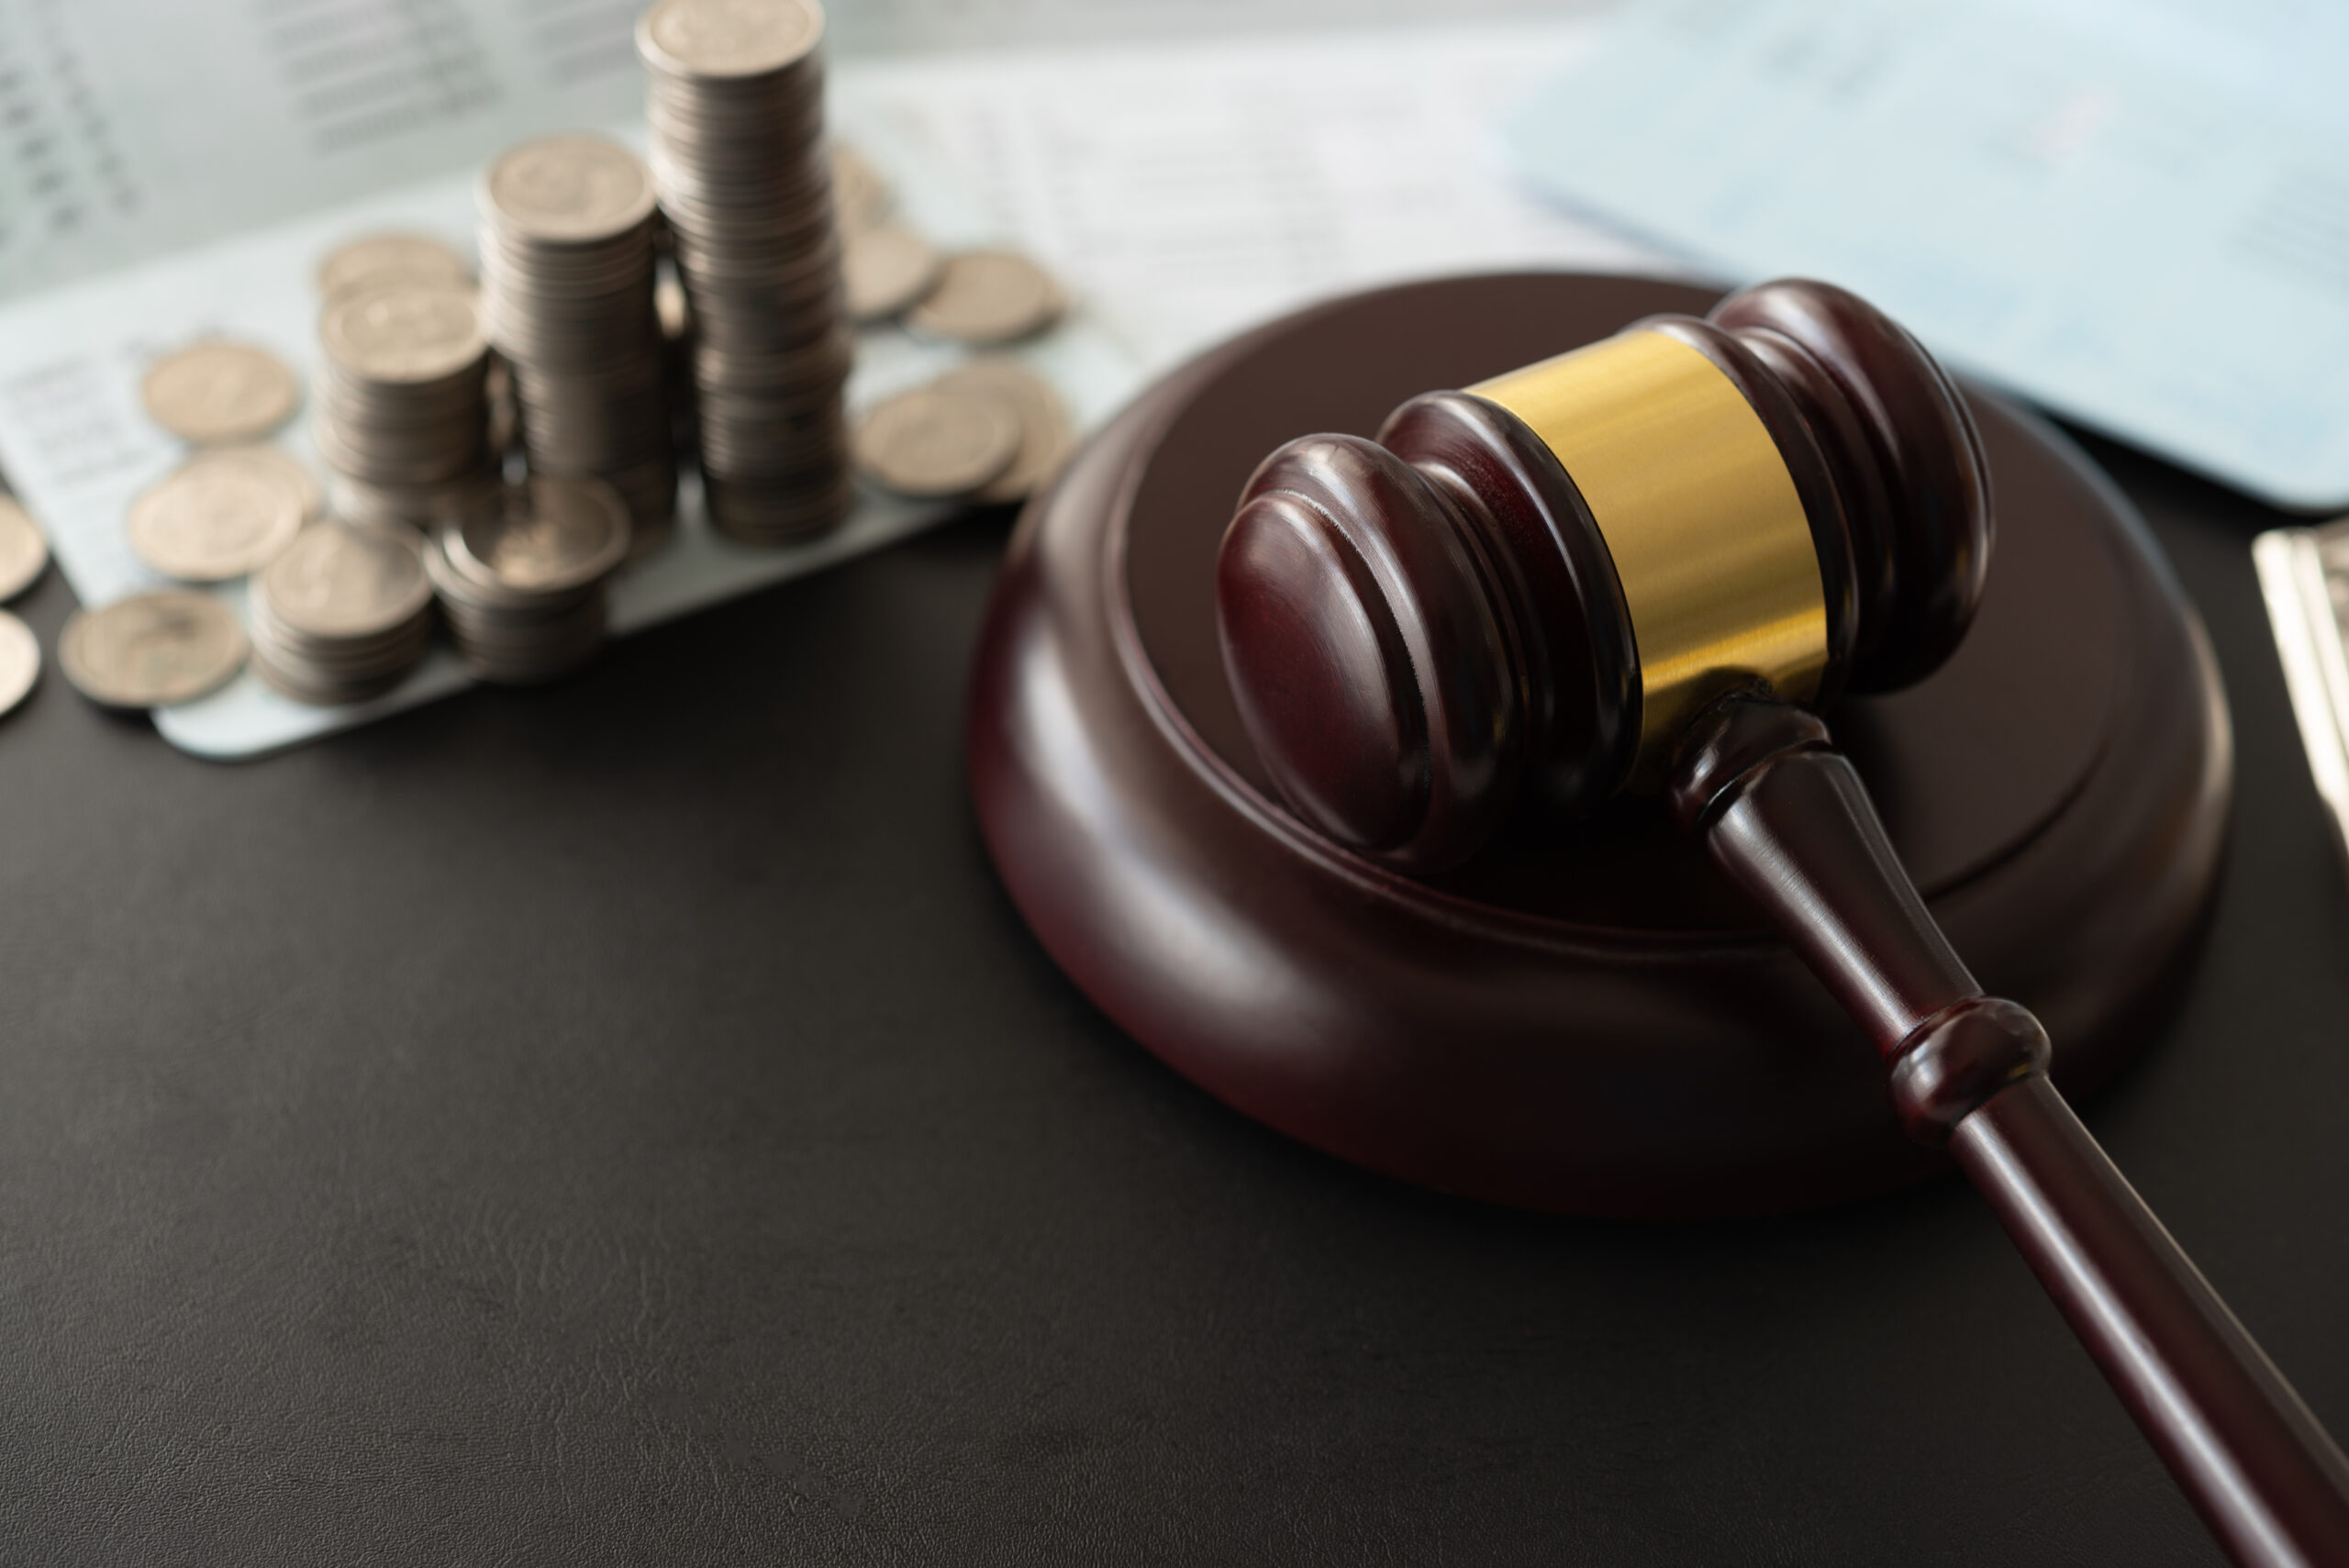 Debt Lawsuit: Expectations vs. Reality